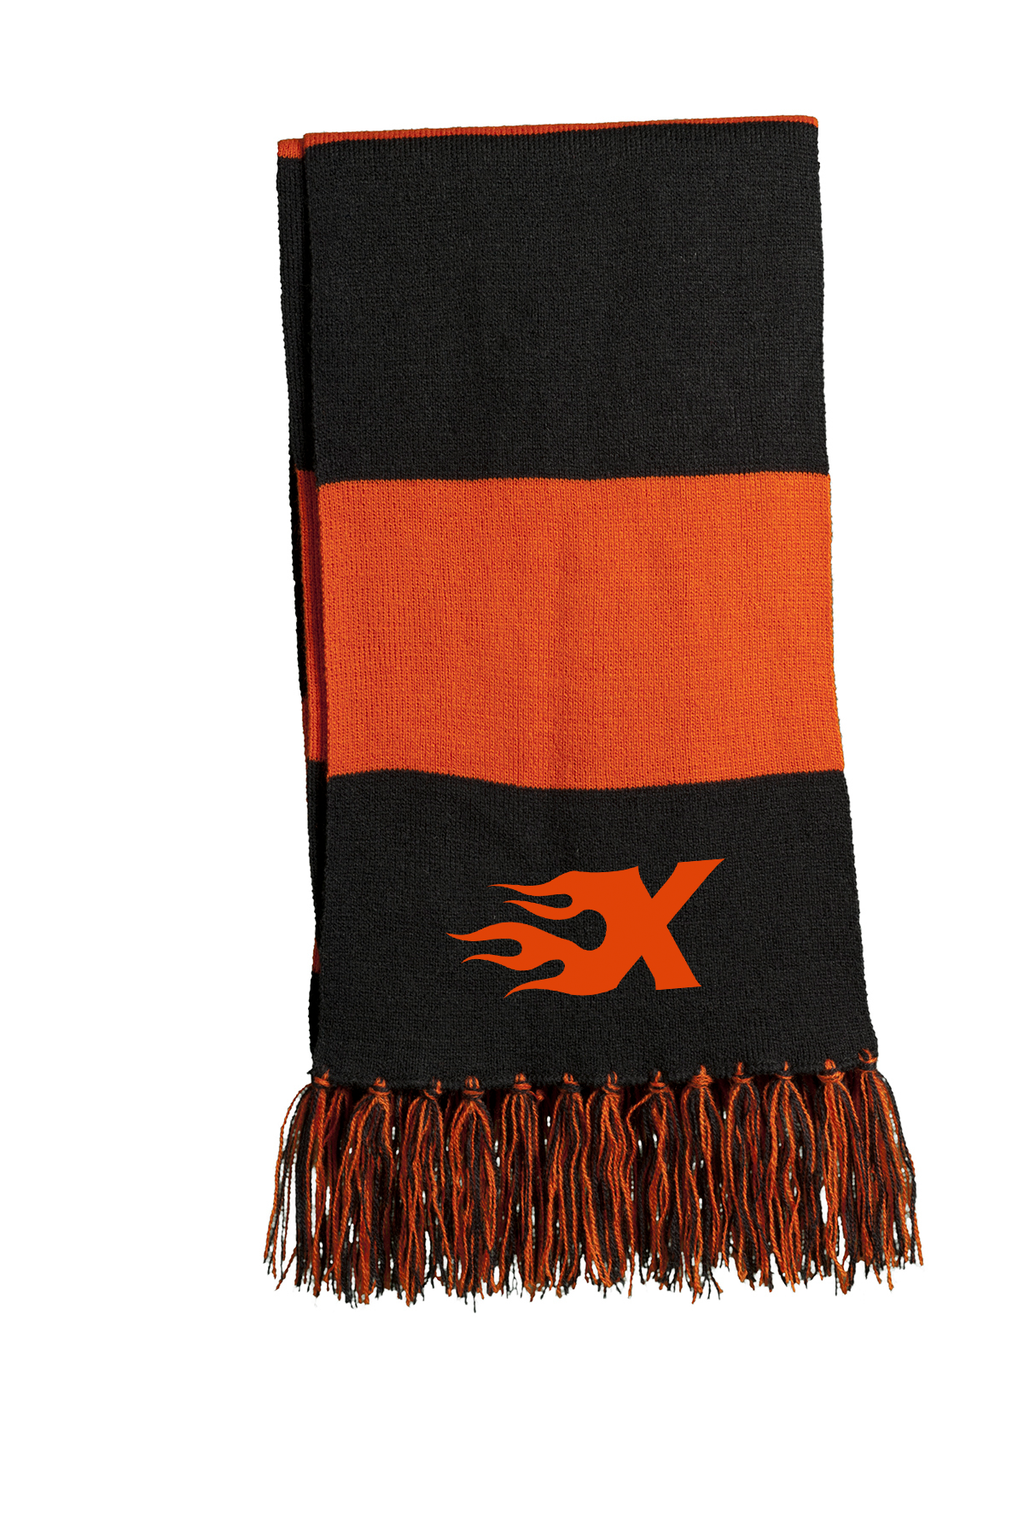 Xtreme Lacrosse Black/Orange Team Scarf